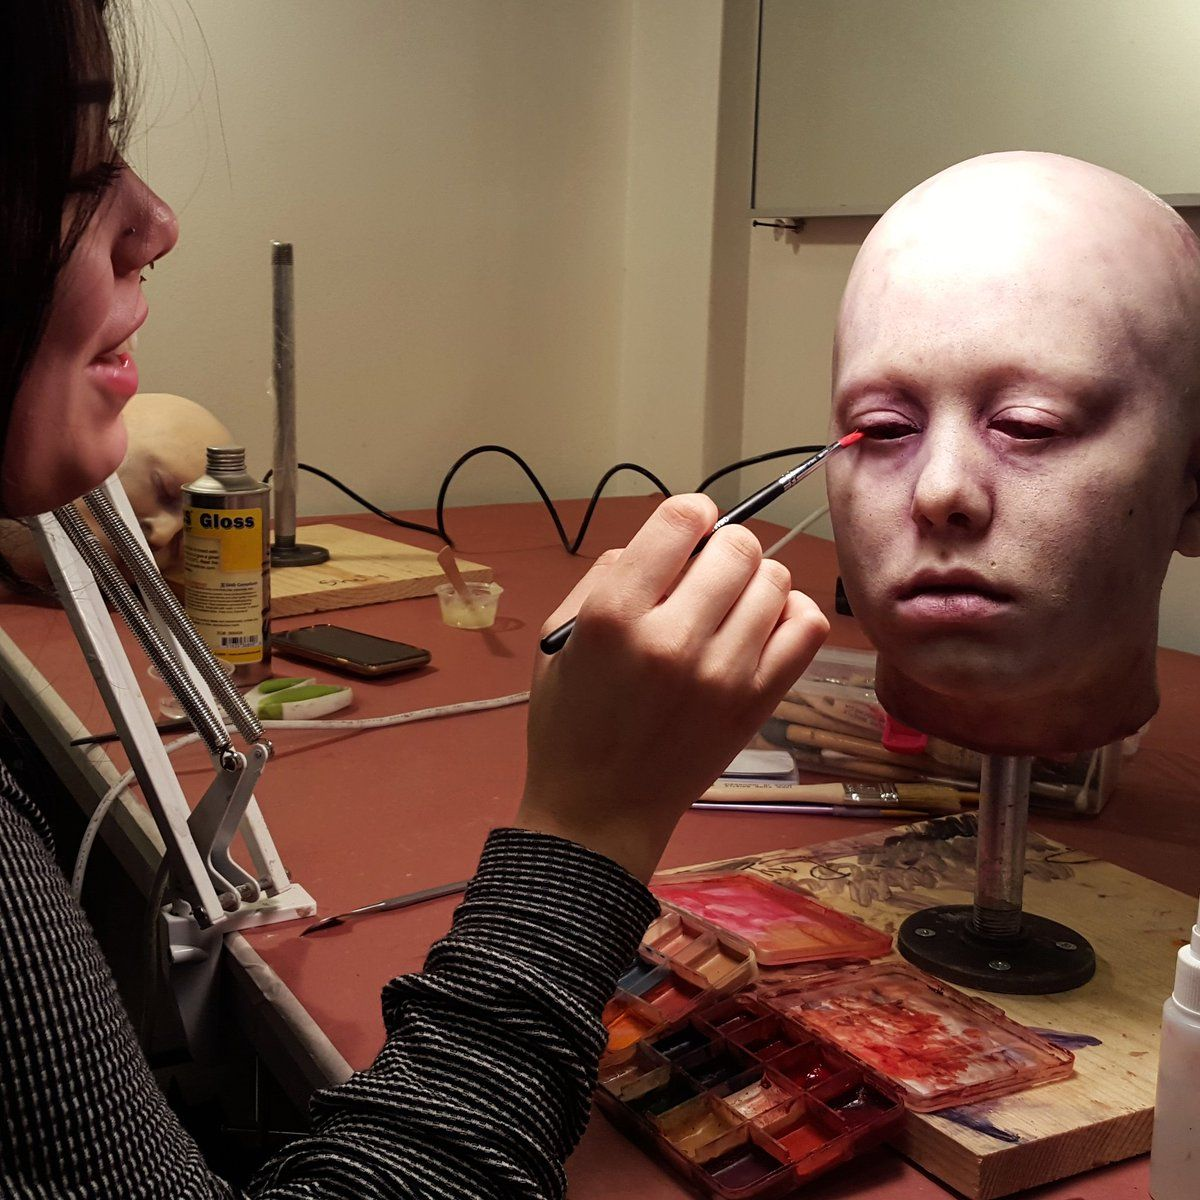 Best 10 Professional Makeup Artist Schools in the USA